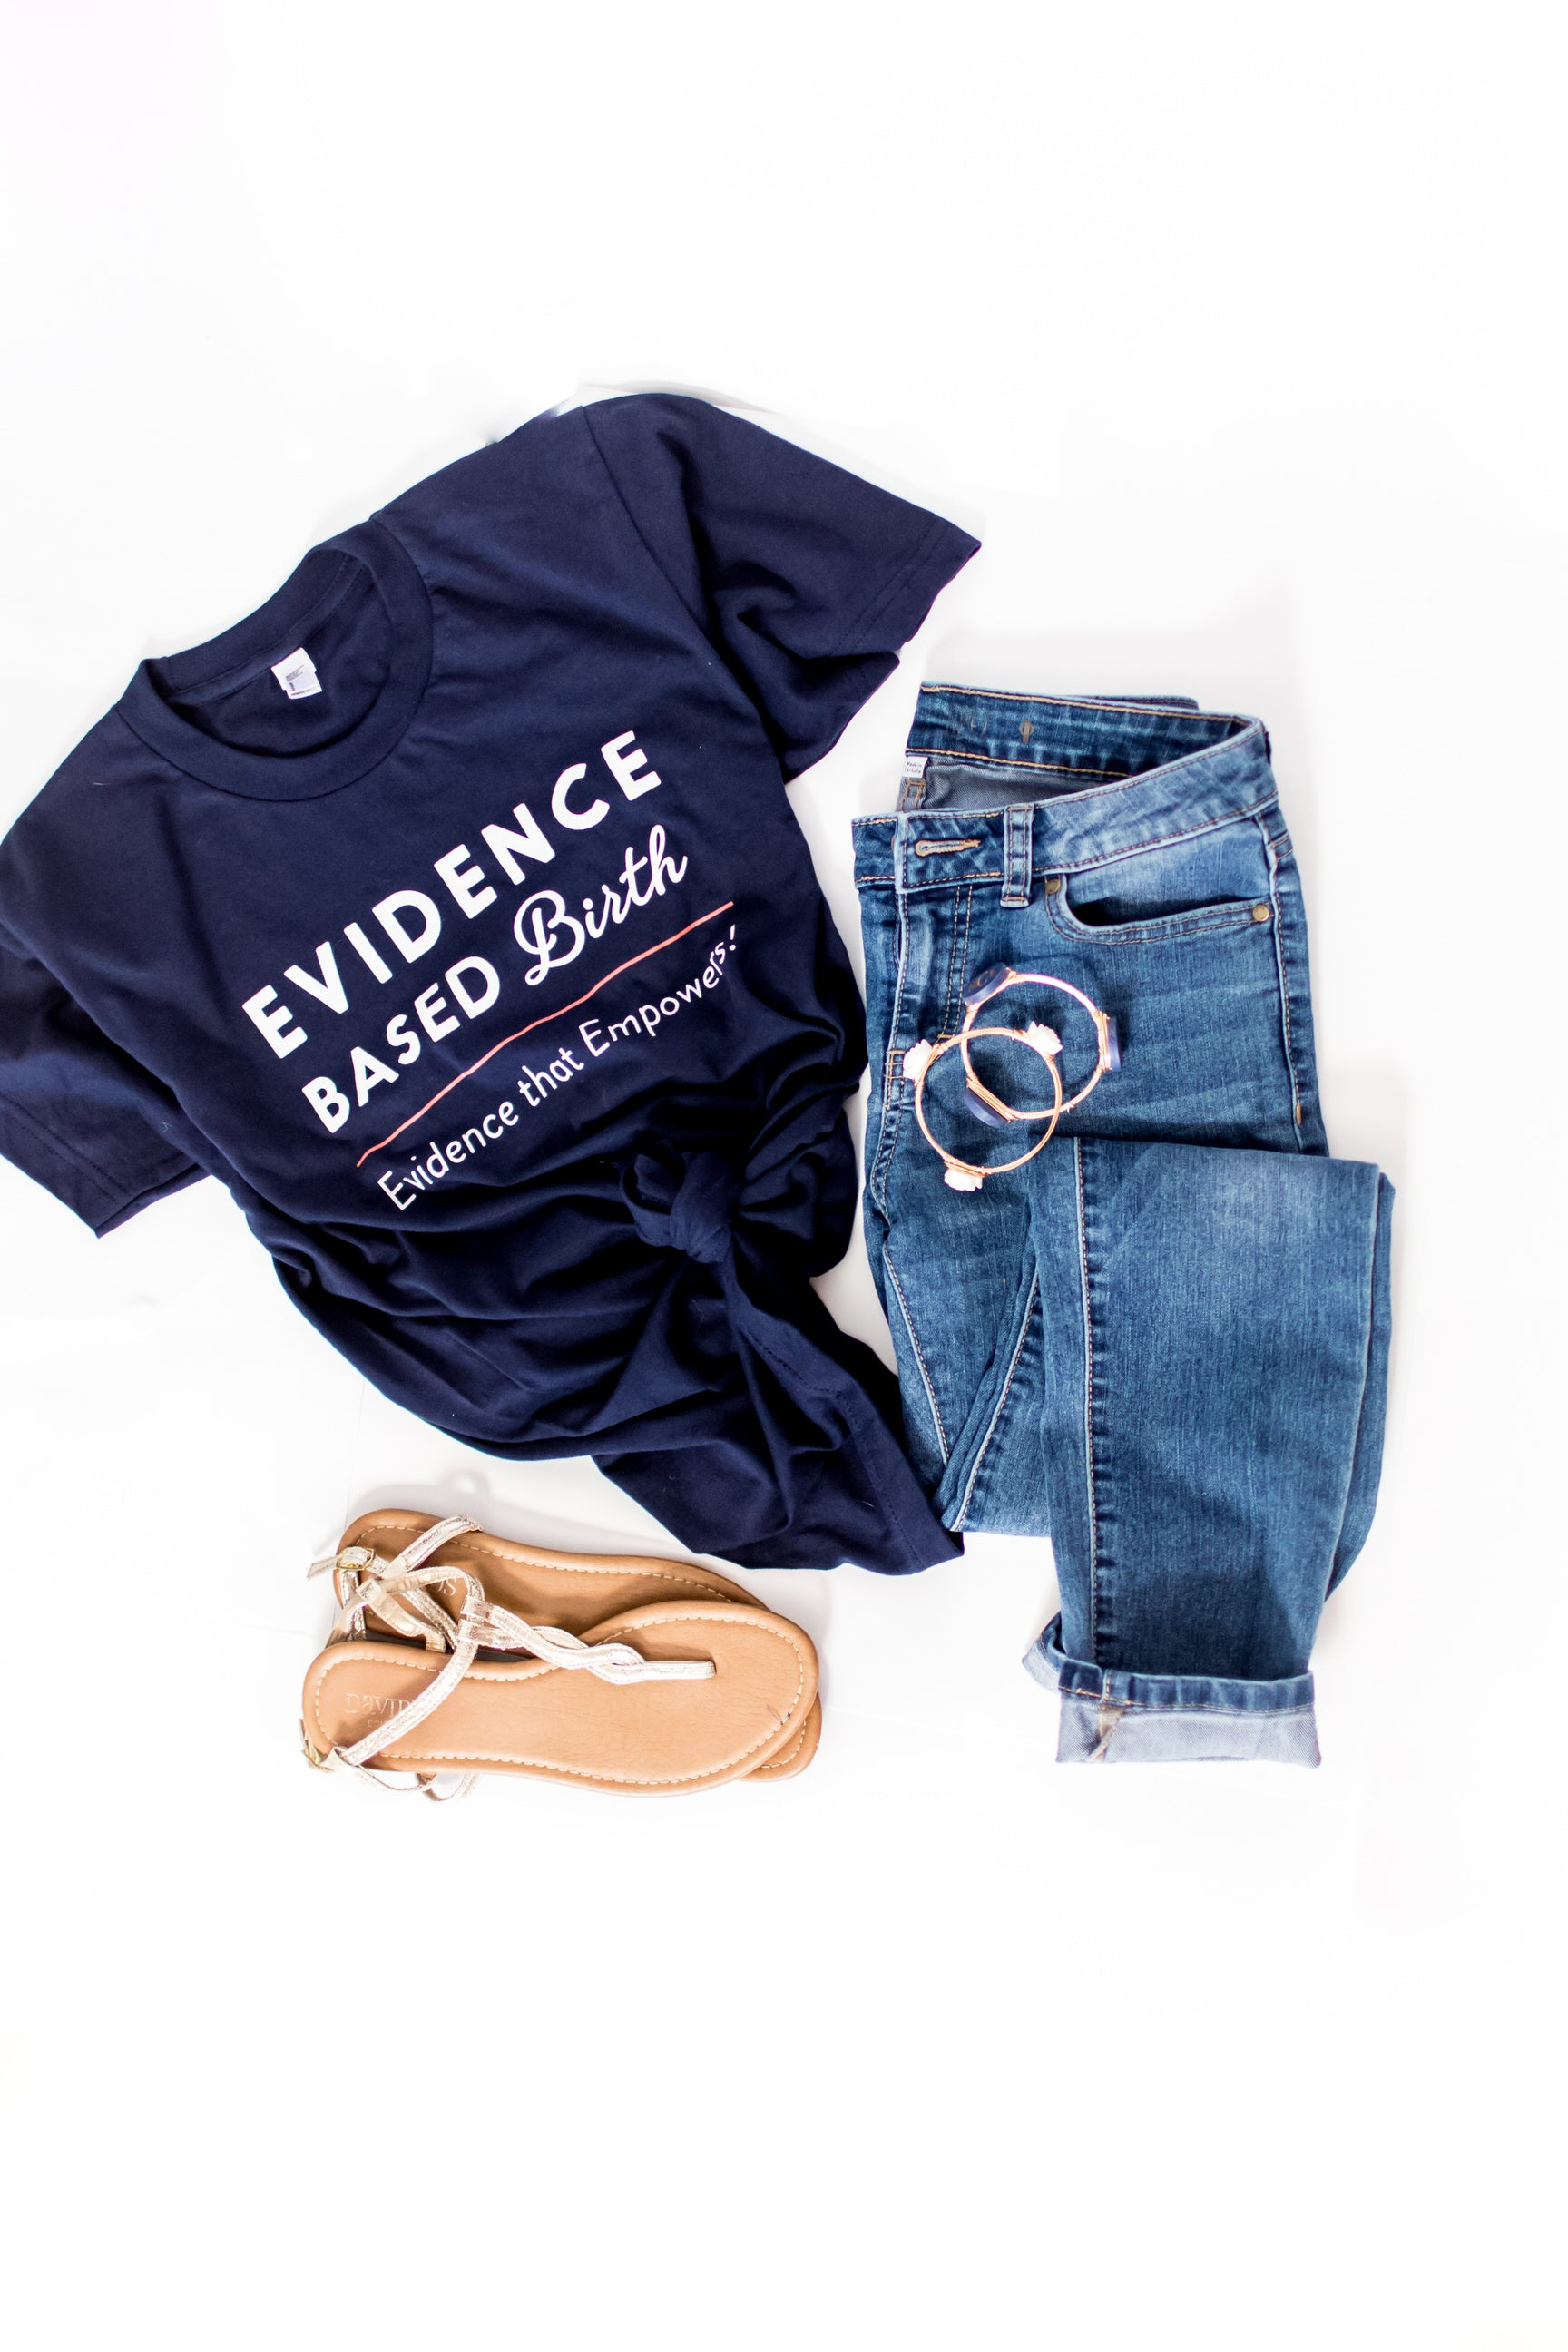 Evidence Based Birth Crew T-shirt